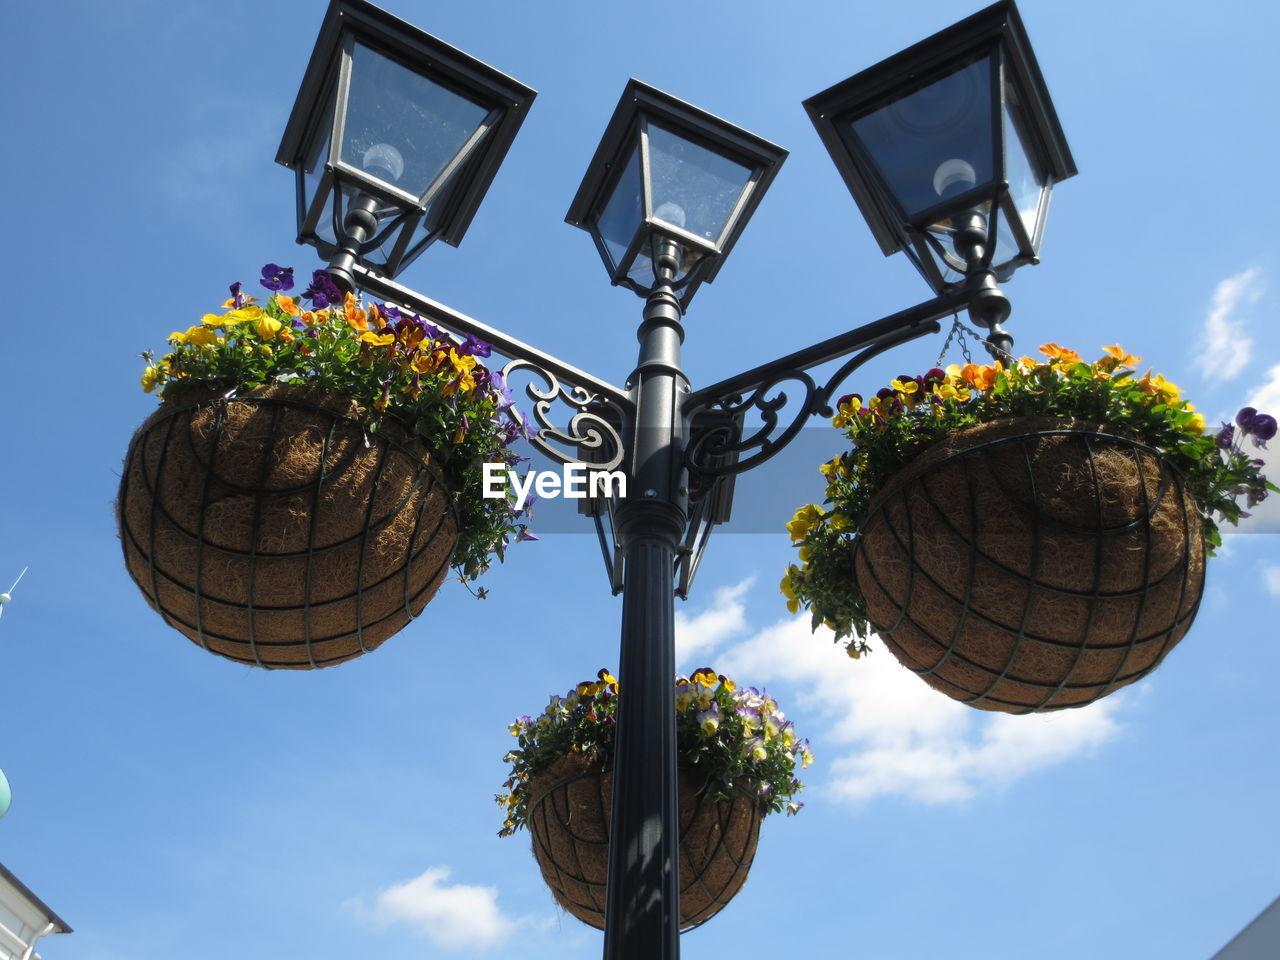 sky, low angle view, street light, street, lighting equipment, plant, nature, no people, flower, day, flowering plant, outdoors, cloud - sky, decoration, architecture, sunlight, tree, sphere, pole, built structure, electric lamp